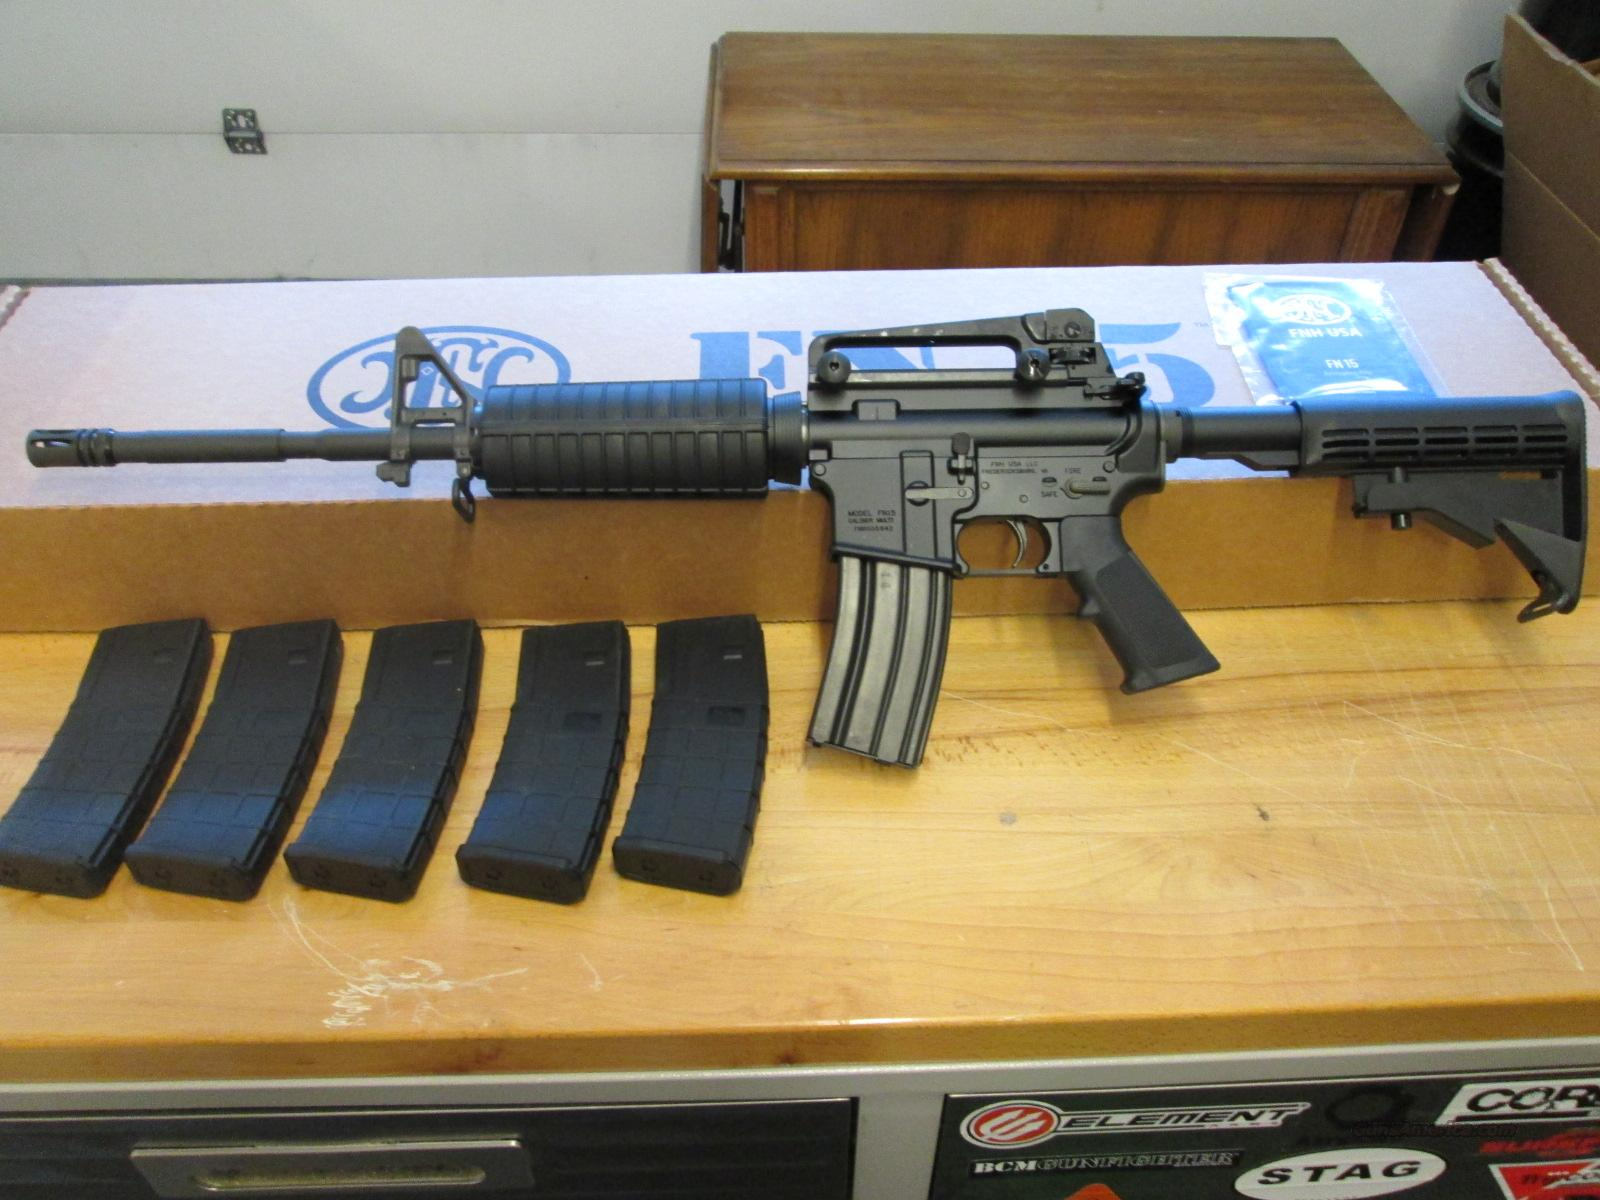 FN Herstal AR-15 + Extras + $125 REBATE   Guns > Rifles > FNH - Fabrique Nationale (FN) Rifles > Semi-auto > Other